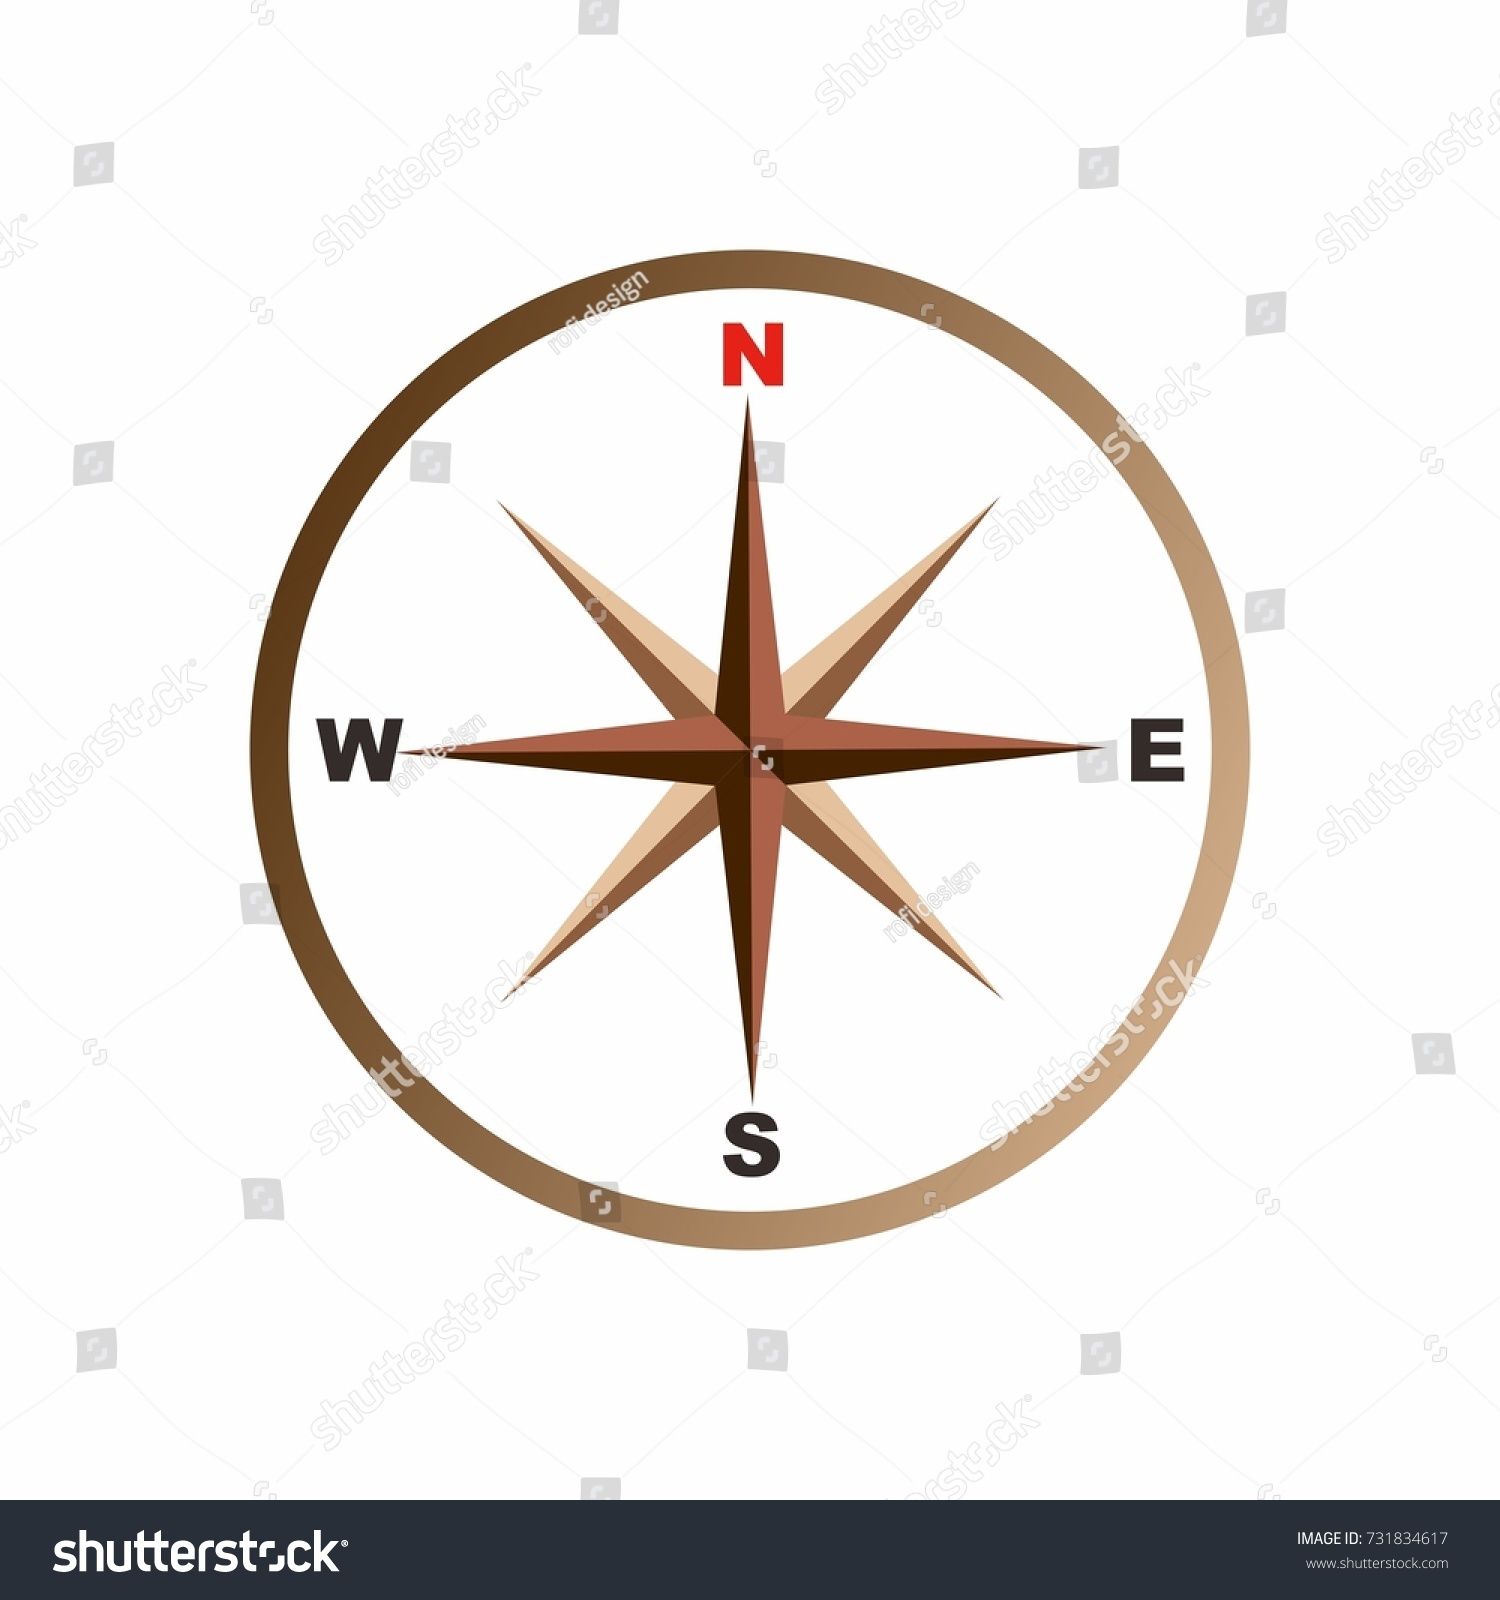 Compass map north south east west stock vector 731834617 compass for map north south east west biocorpaavc Image collections